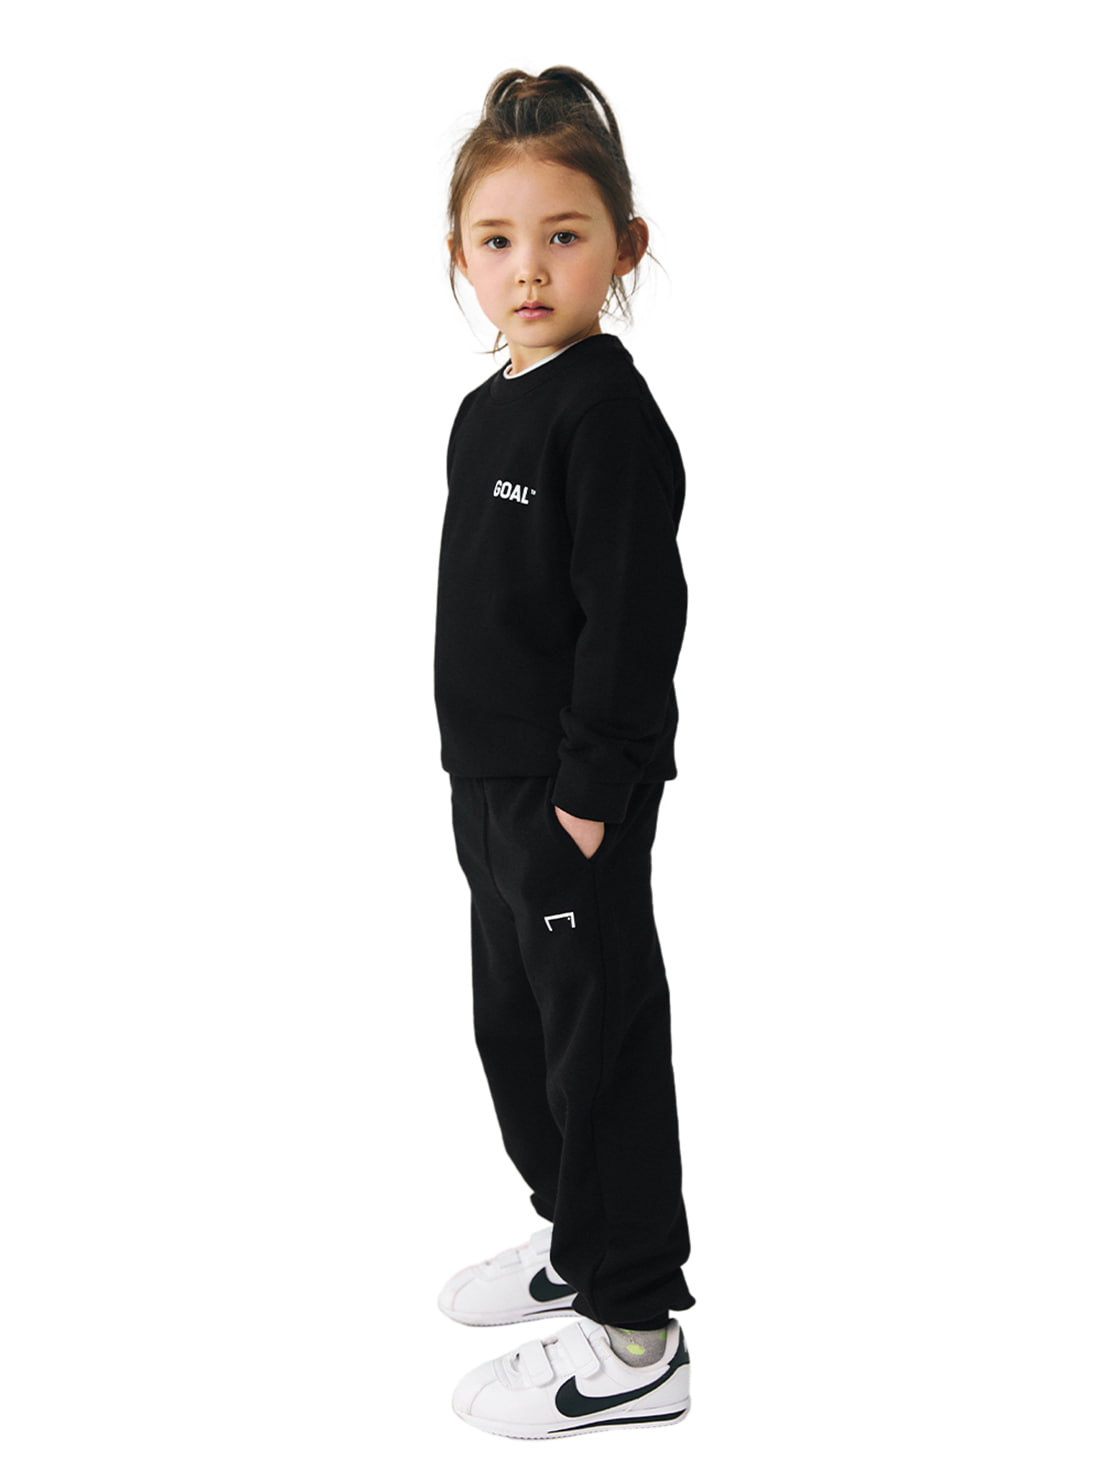 GOALSTUDIO [10% OFF] (KIDS) BACK LOGO SWEATSHIRTS & PANTS SET